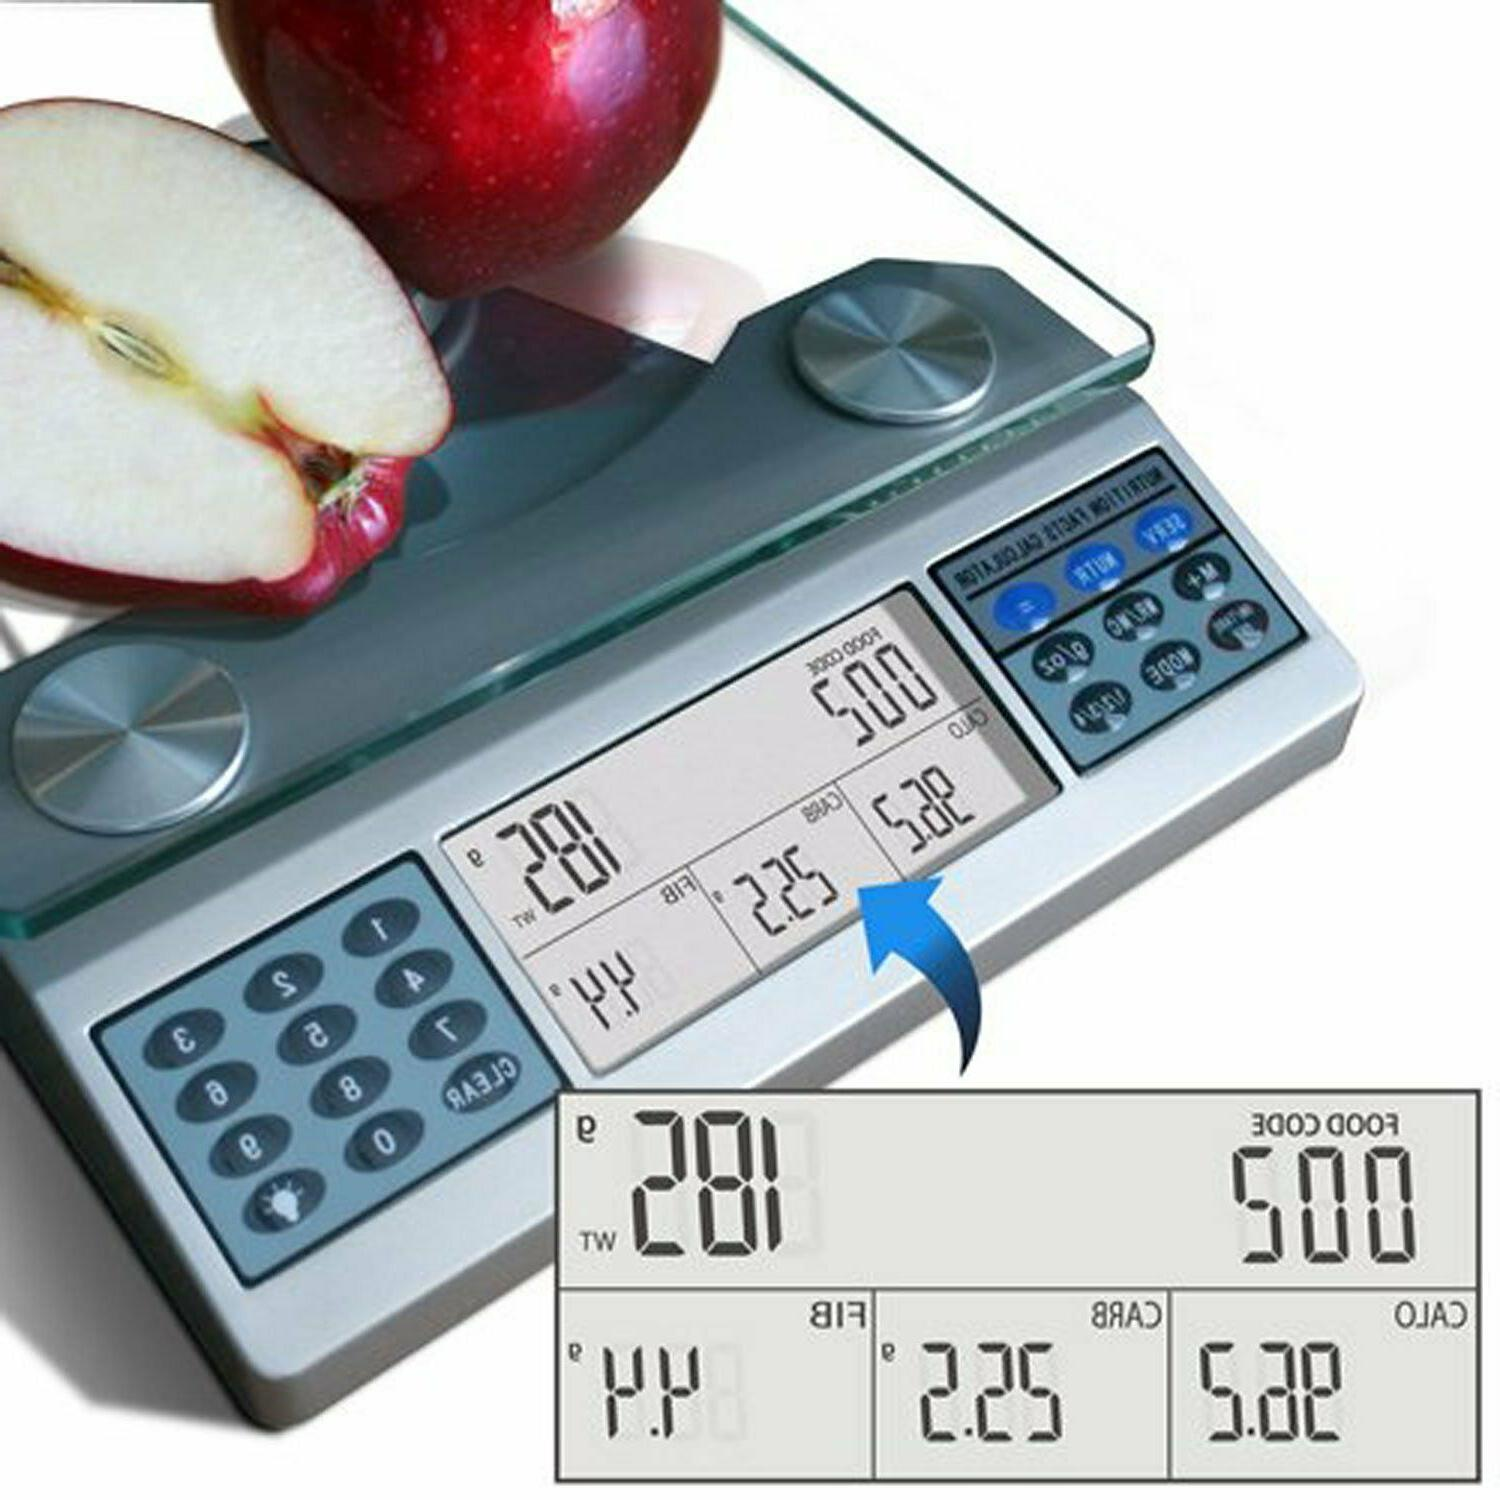 EatSmart Digital Scale - Food Nutrient Calculator